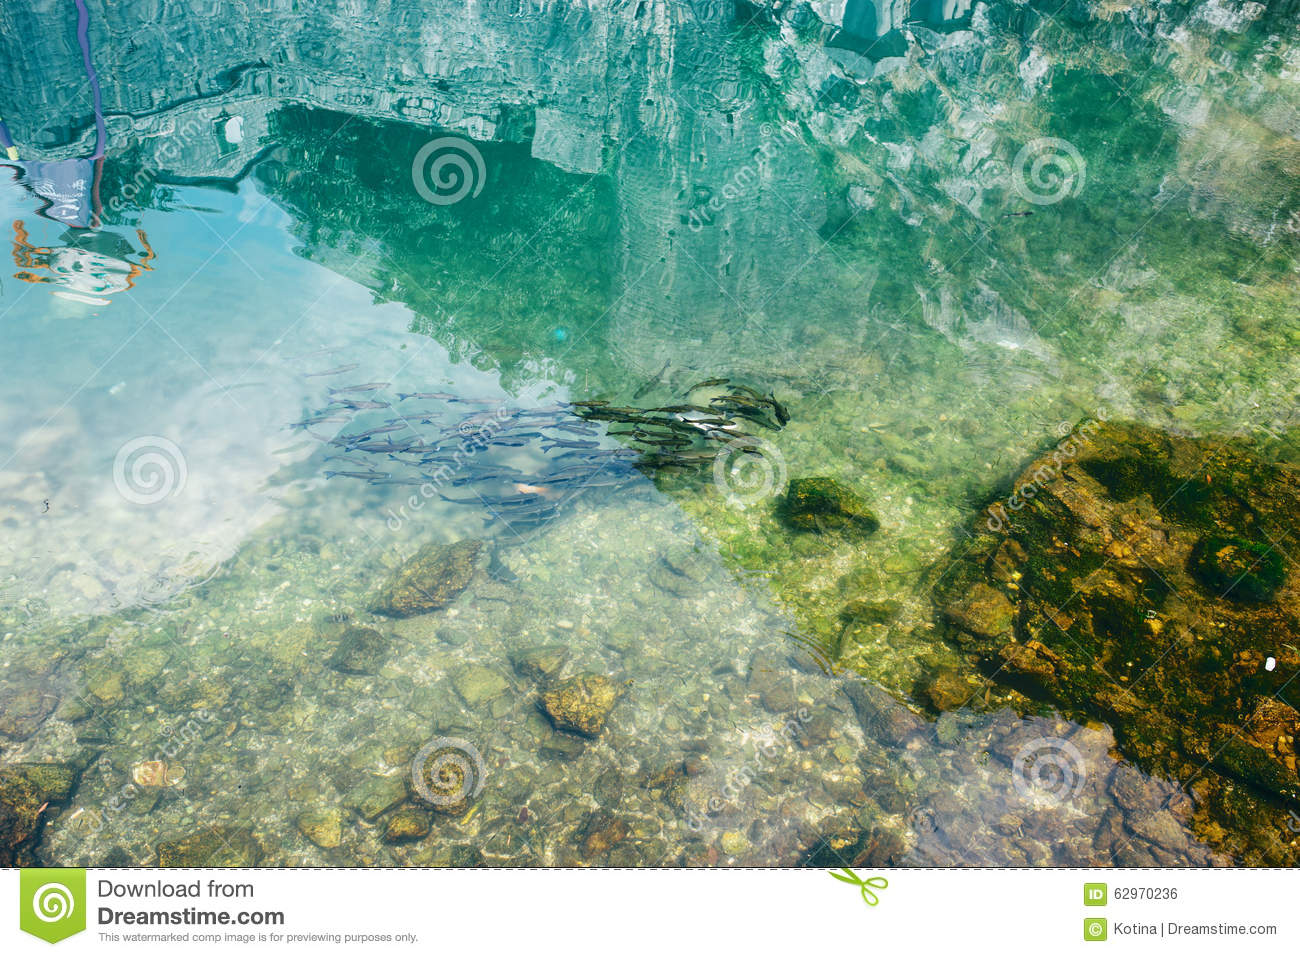 Wild fish in a pond near kotor fortress stock photo for Stocked fishing ponds near me